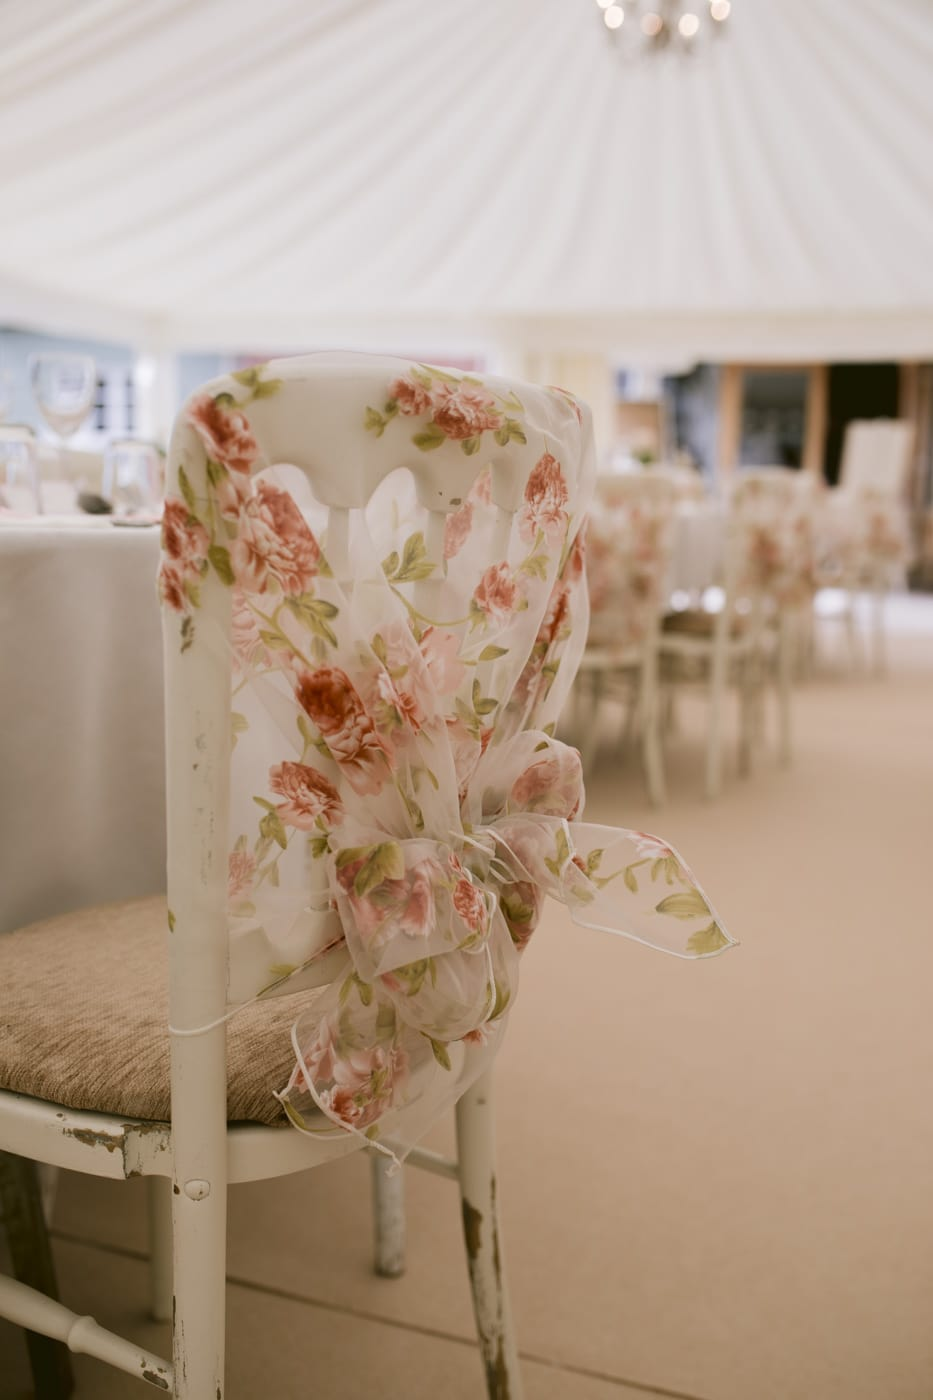 Wedding Reception Chair with Decorative Bows Photography Session